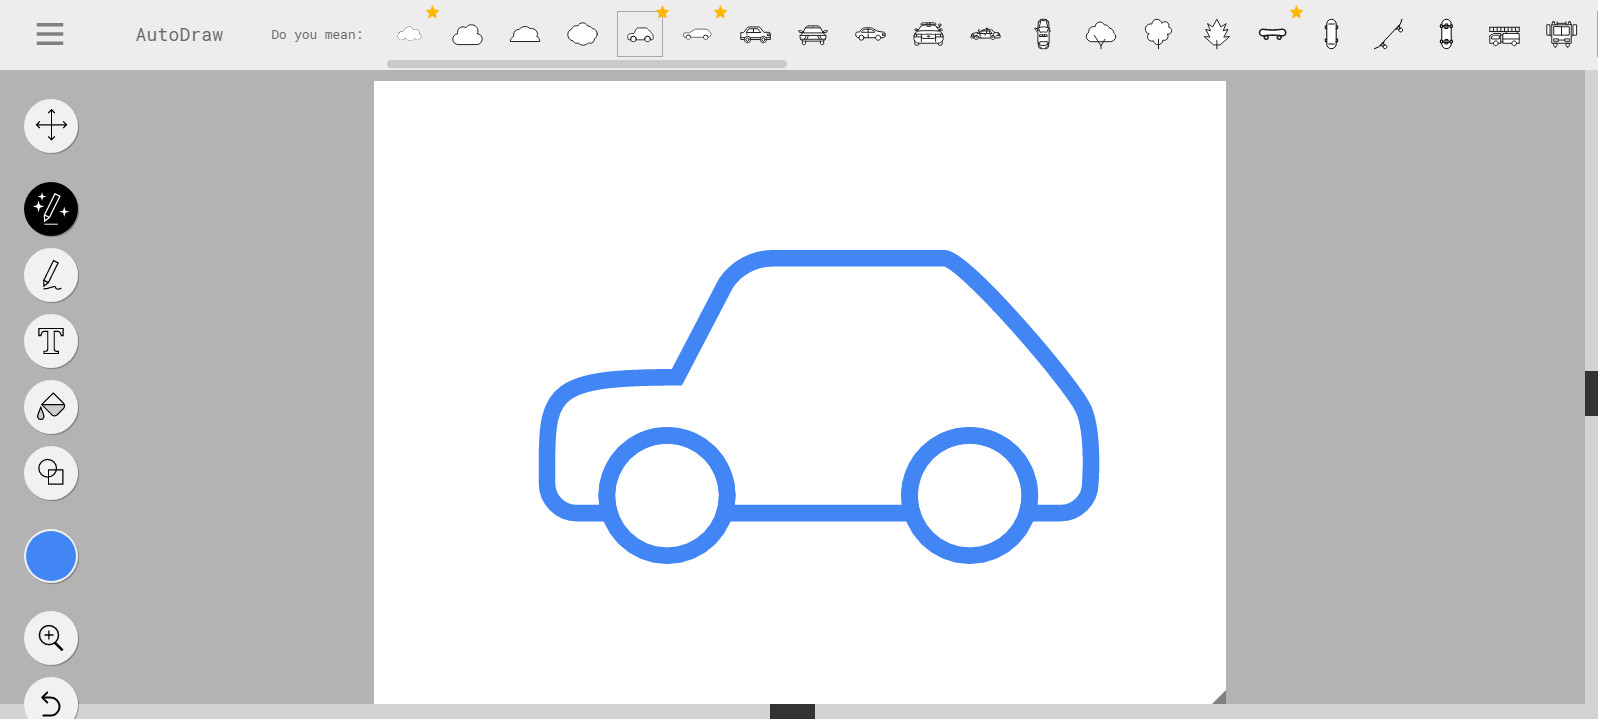 1598x719 auto drawing with google auto draw indolent house